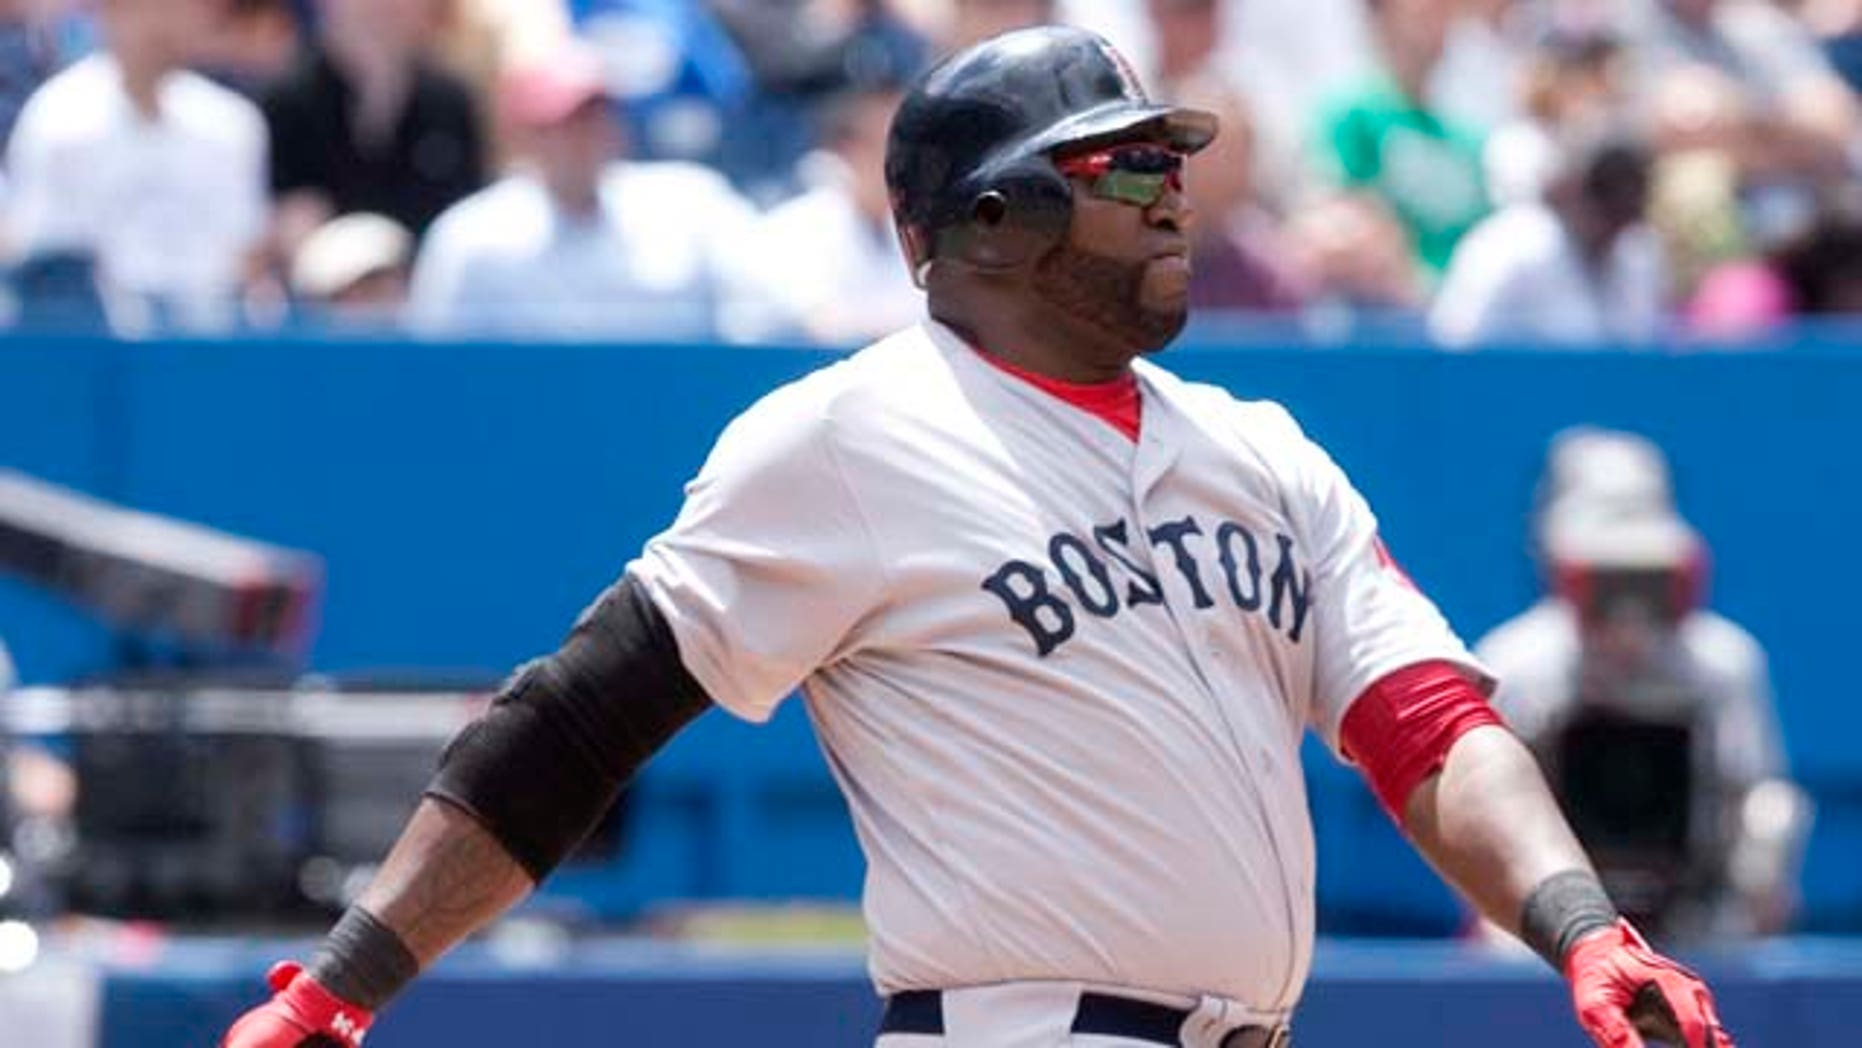 Boston Red Sox's David Ortiz hits a three-run home run in the fifth inning of MLB baseball game action against the Toronto Blue Jays in Toronto, Sunday, June 12, 2011. (AP Photo/The Canadian Press, Darren Calabrese)